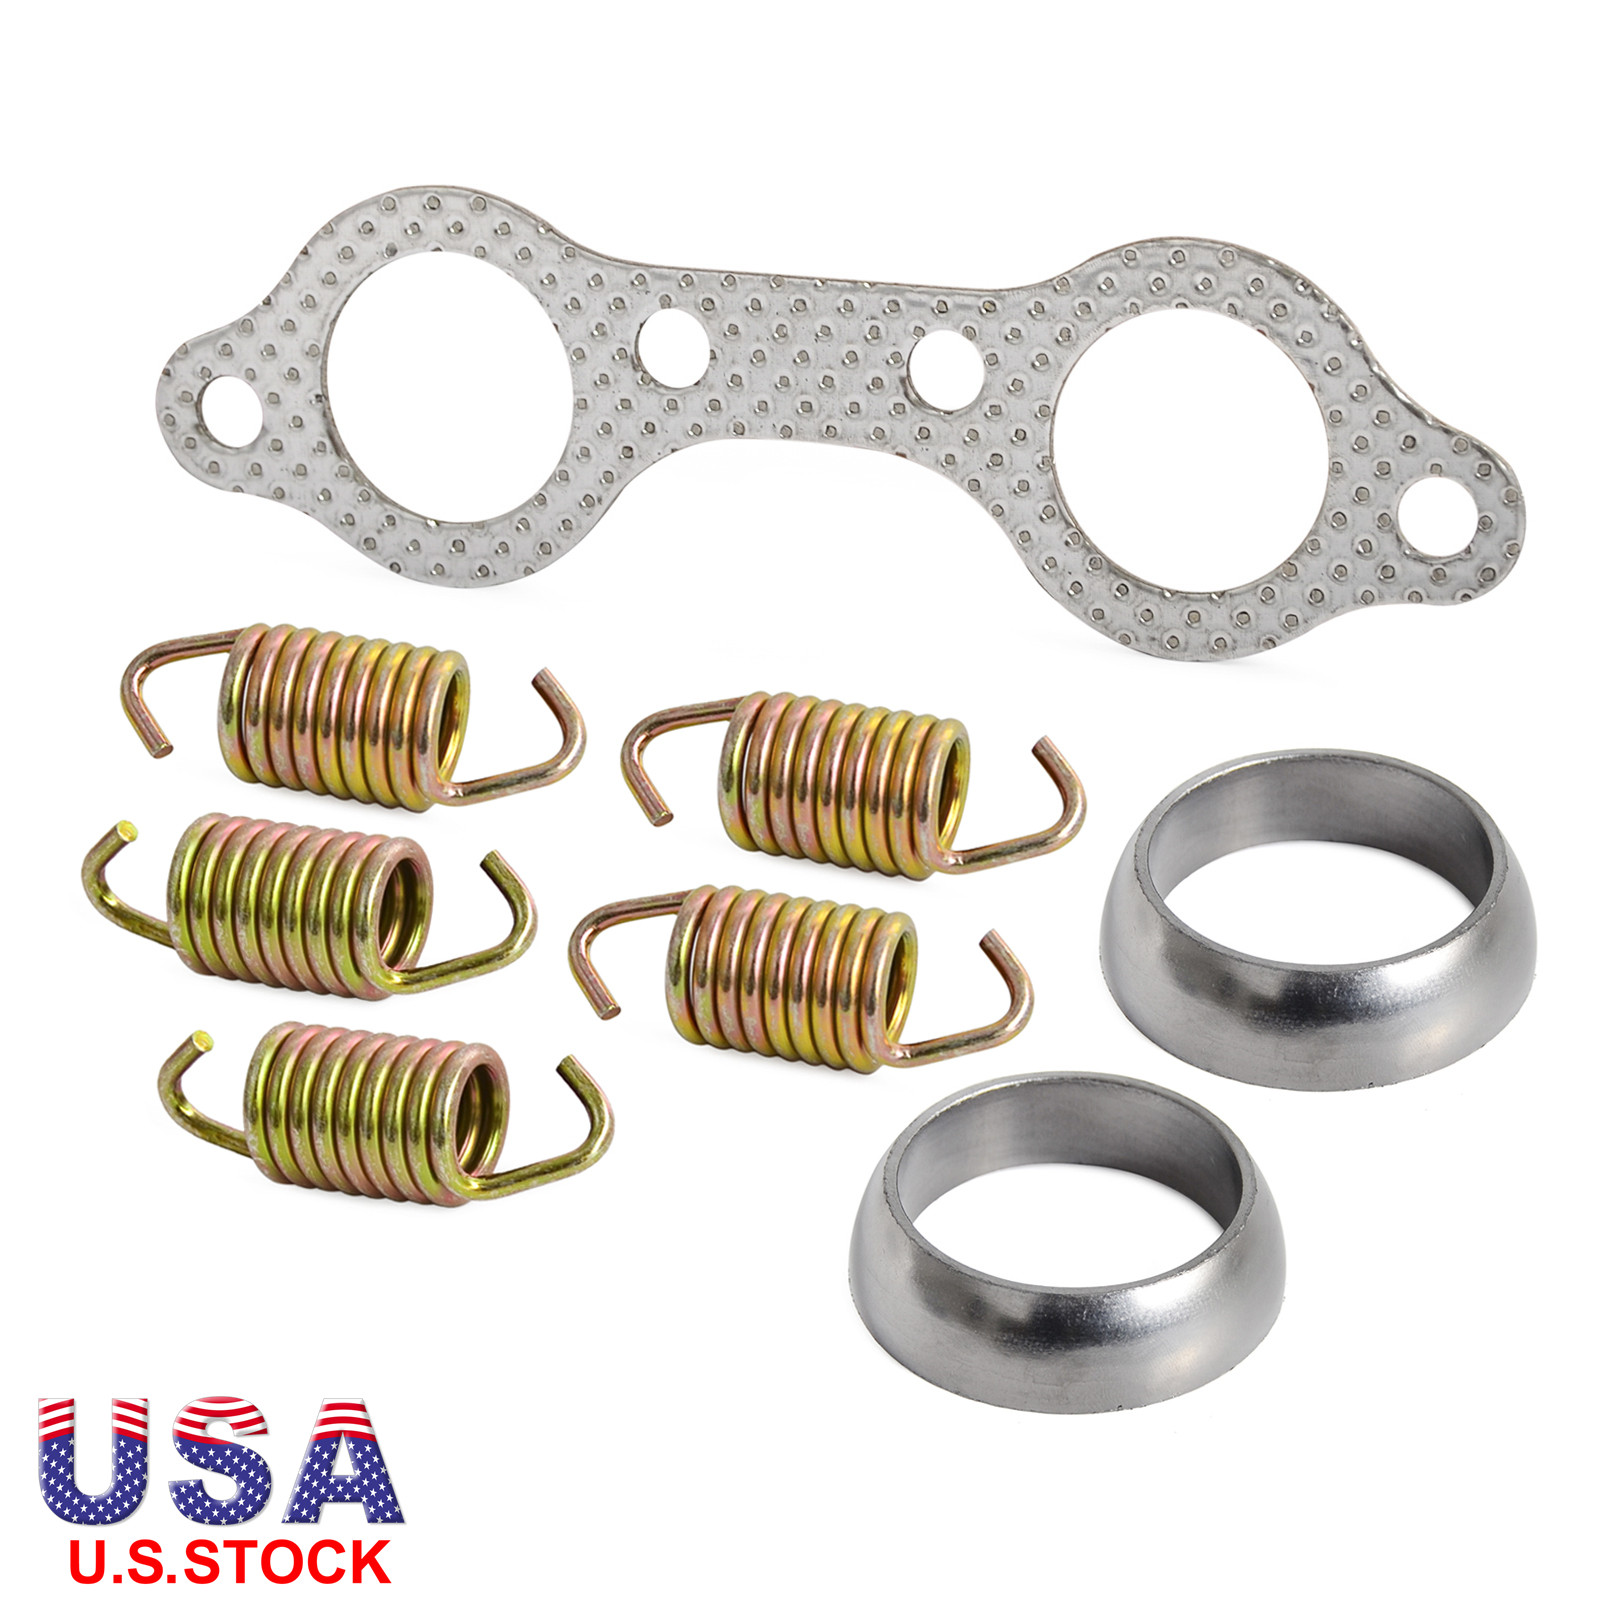 Value pack Pair of Exhaust Manifold Gasket Replacement for Motorbike Motorcycle ATV UTV 5811511 2pcs